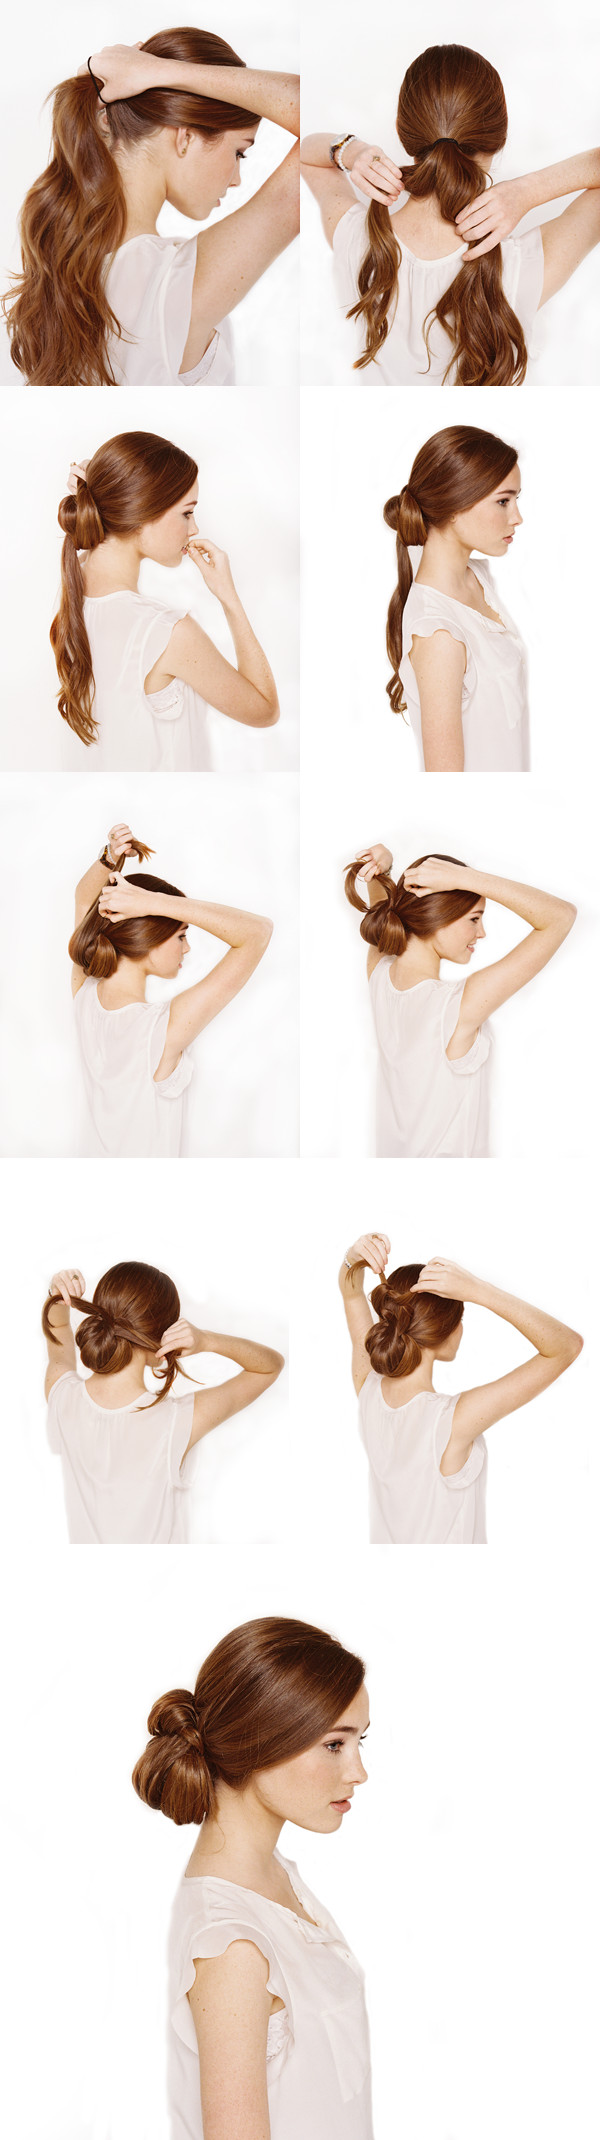 Best ideas about DIY Wedding Hairstyles For Long Hair . Save or Pin Knotted Chignon Wedding Hair Tutorial ce Wed Now.